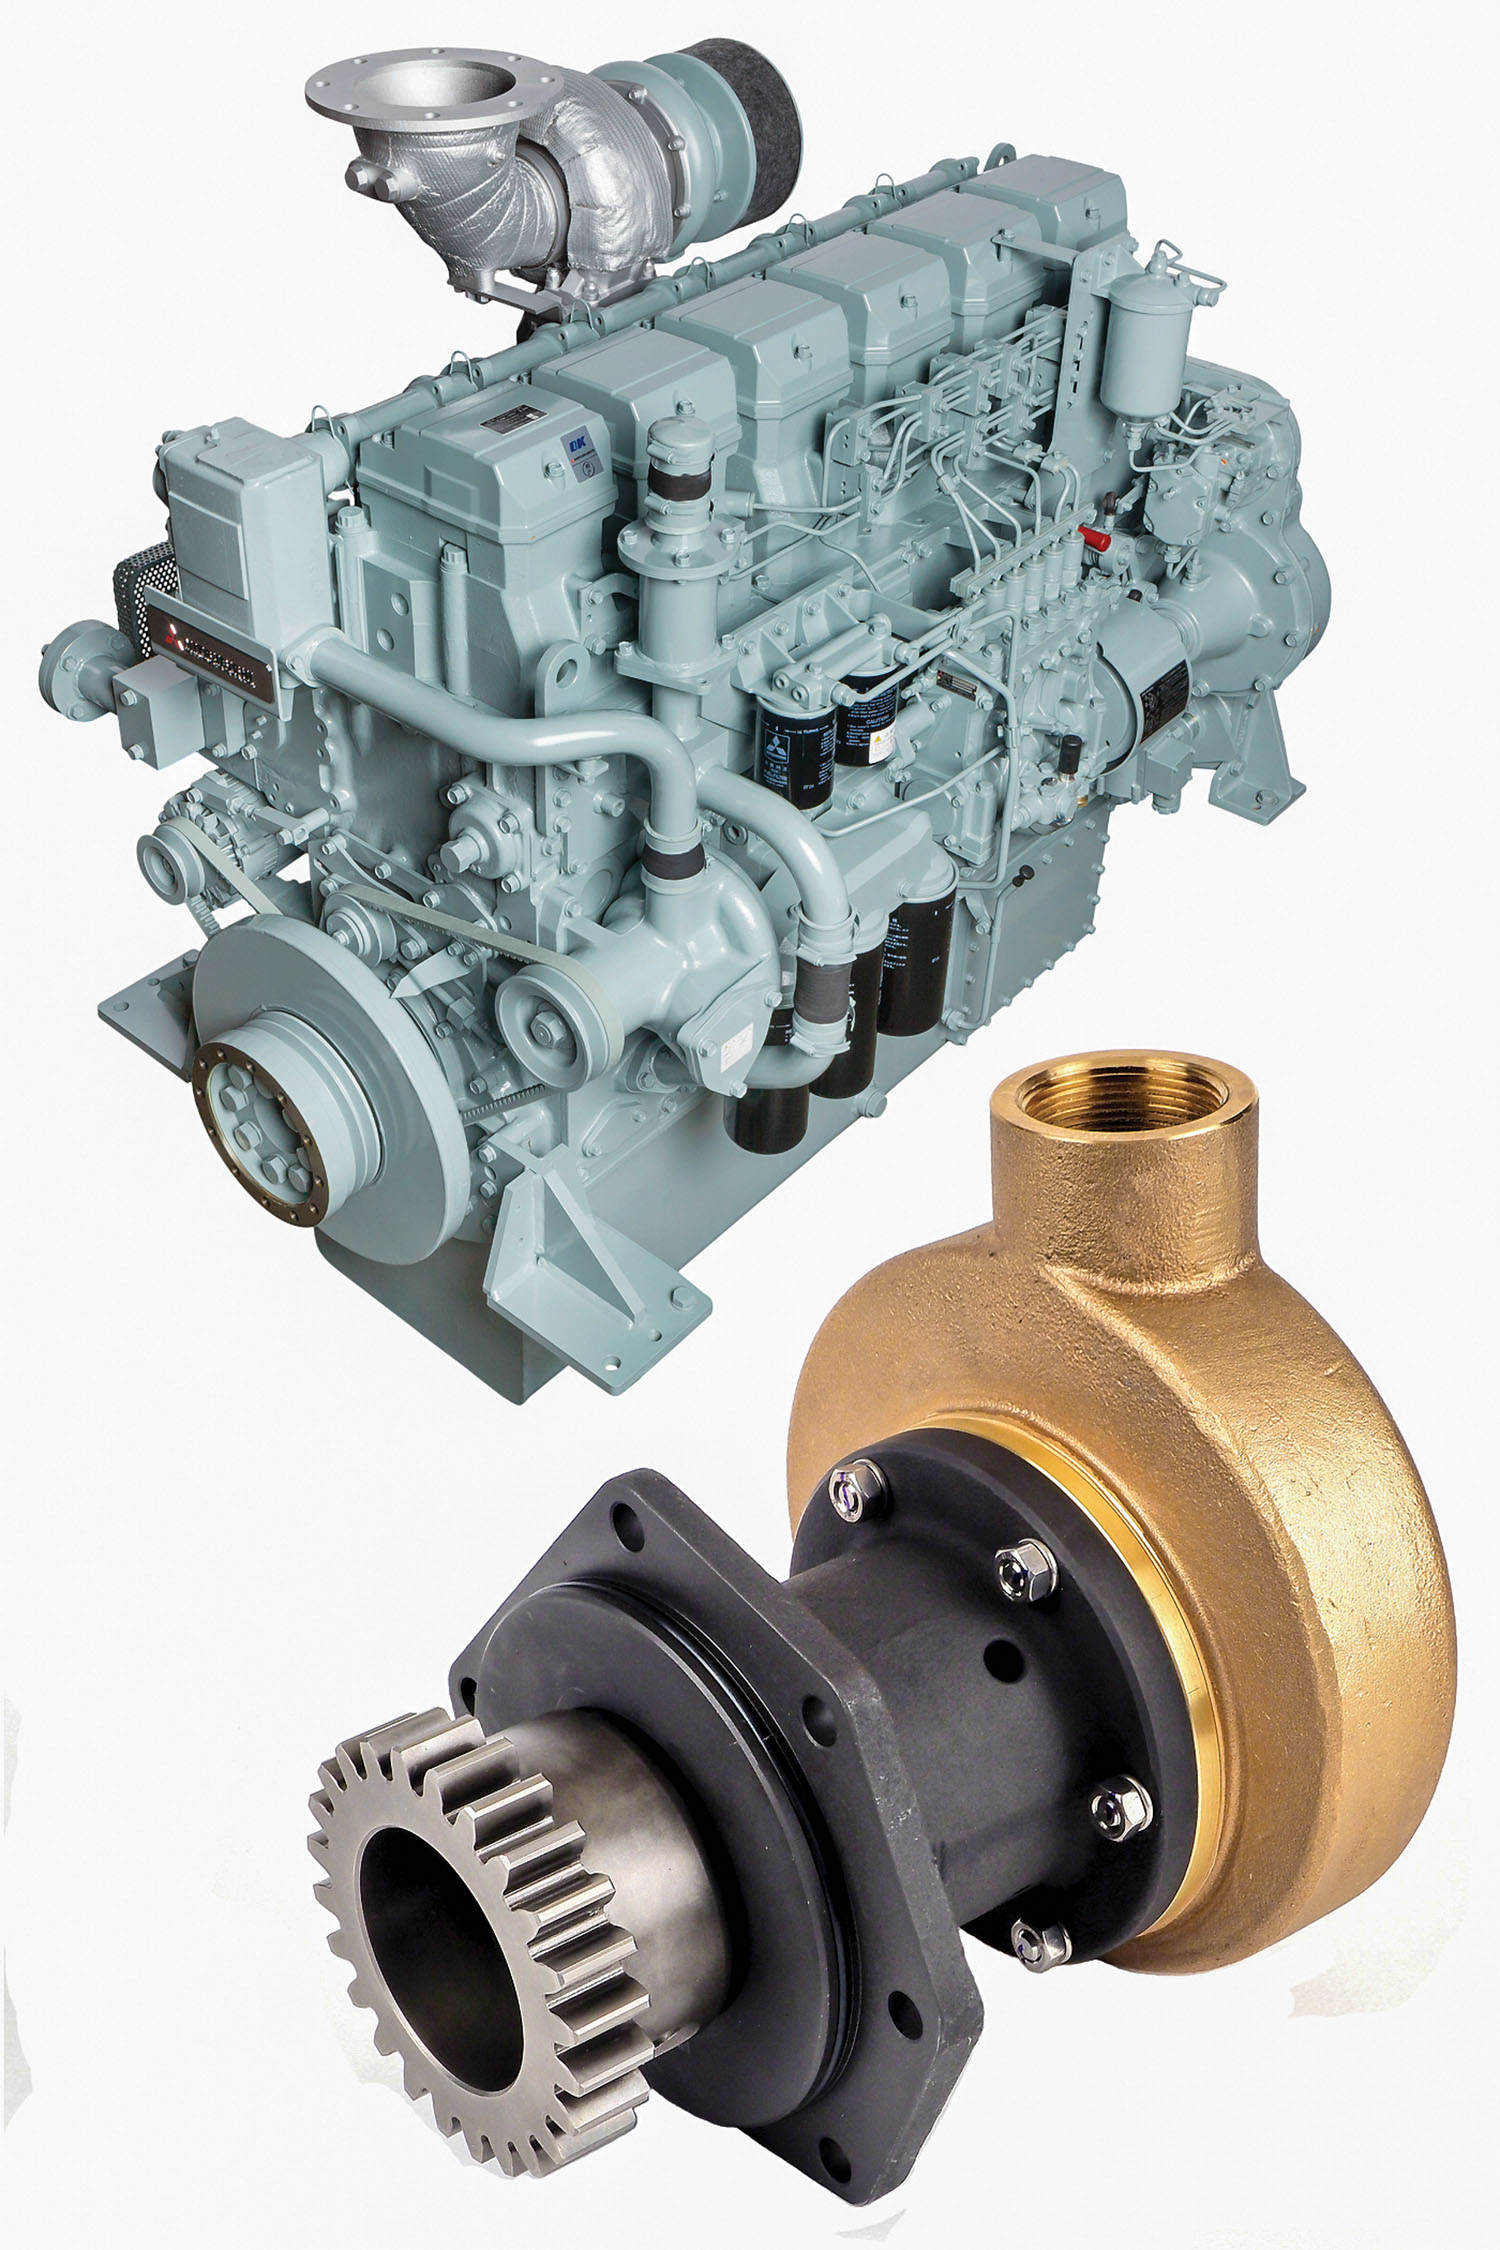 ME5000 series pumps can be configured three ways for different Mitsubishi engines.